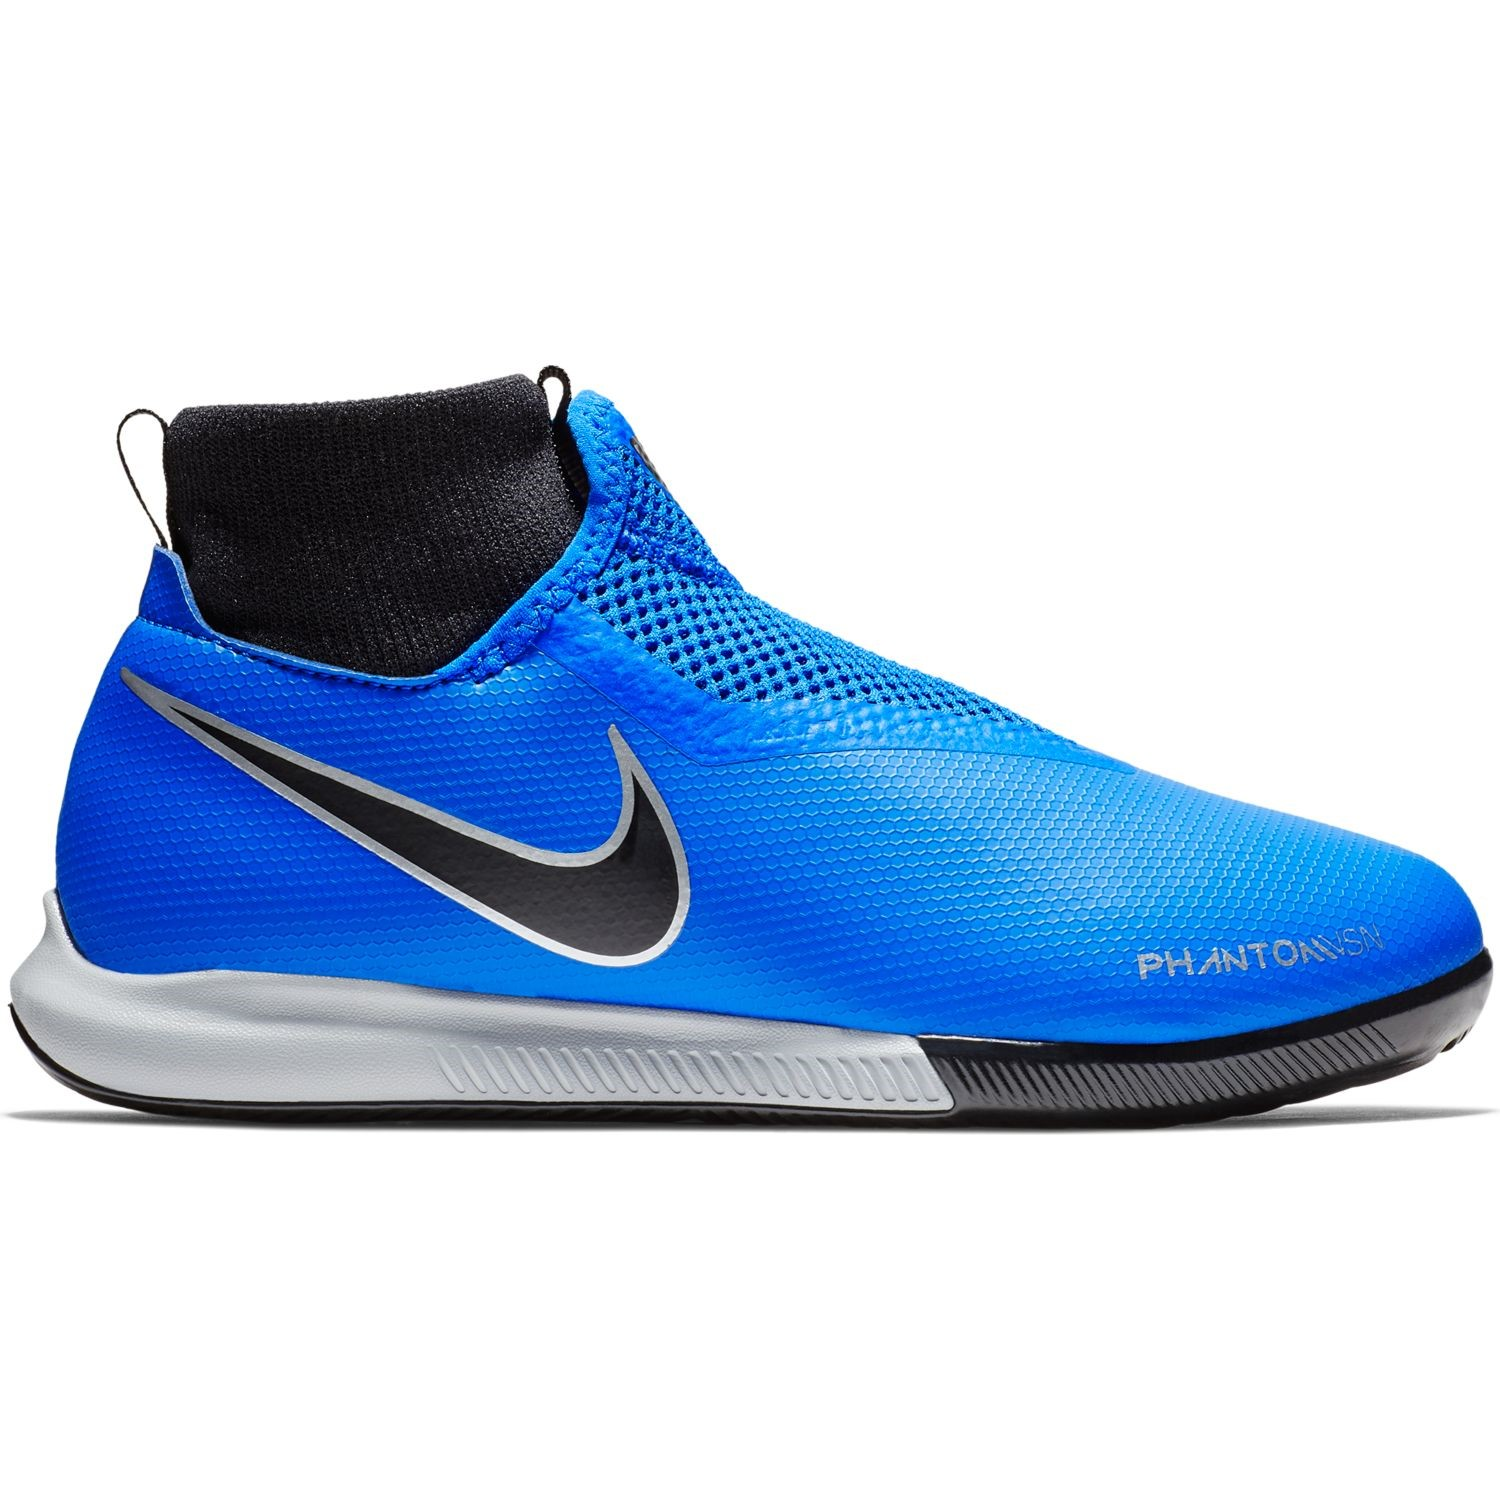 8be668d8261 Nike Jr Phantom Vision Academy DF IC - Kids Indoor Soccer Futsal Shoes -  Racer